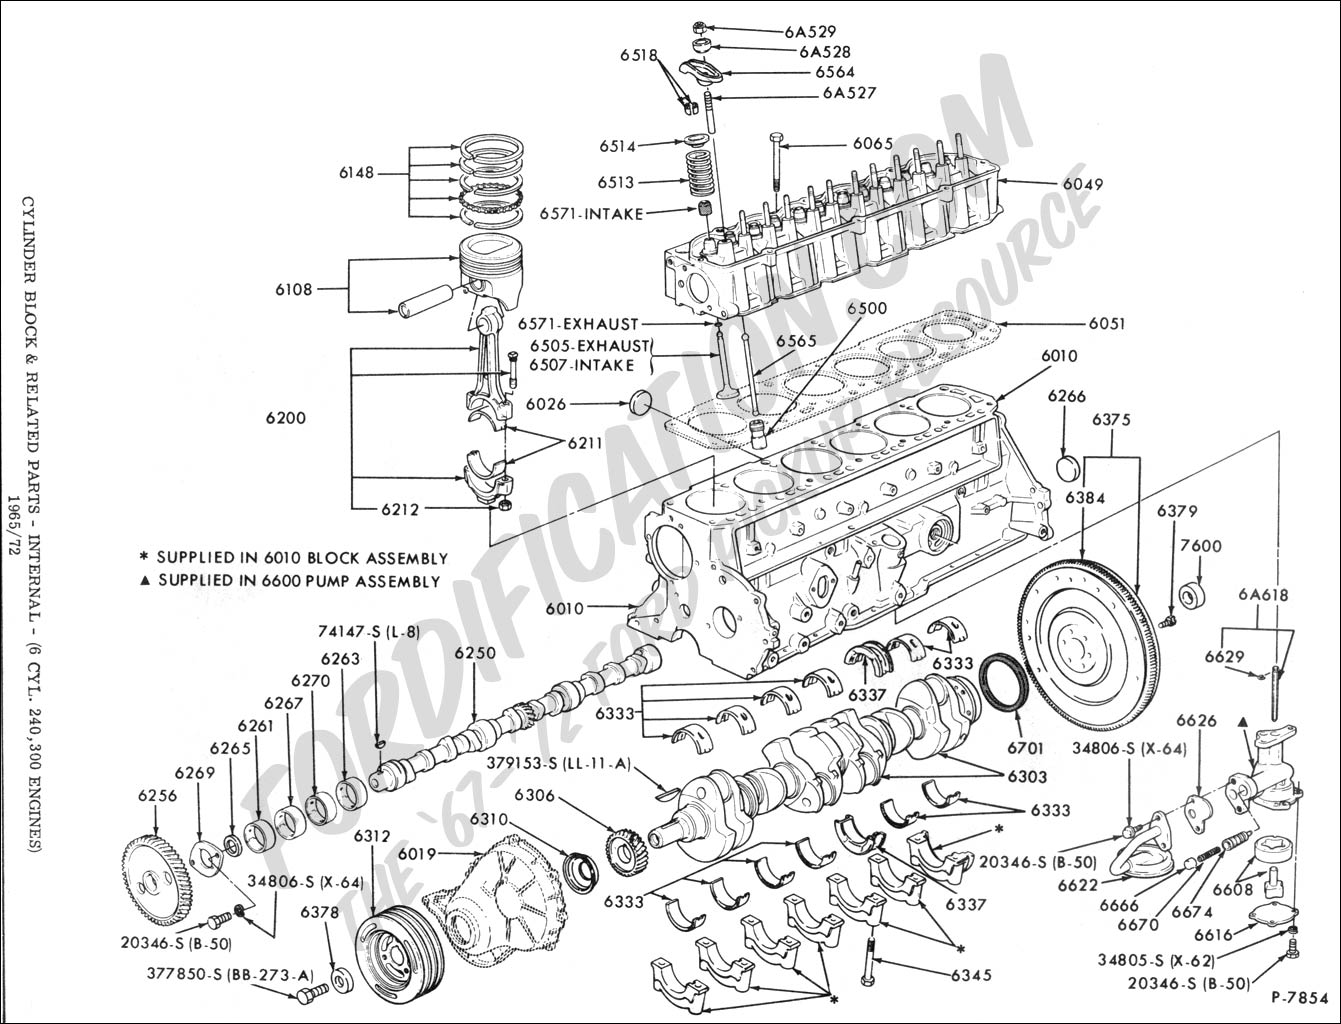 Amazing garbage truck parts diagram position electrical diagram